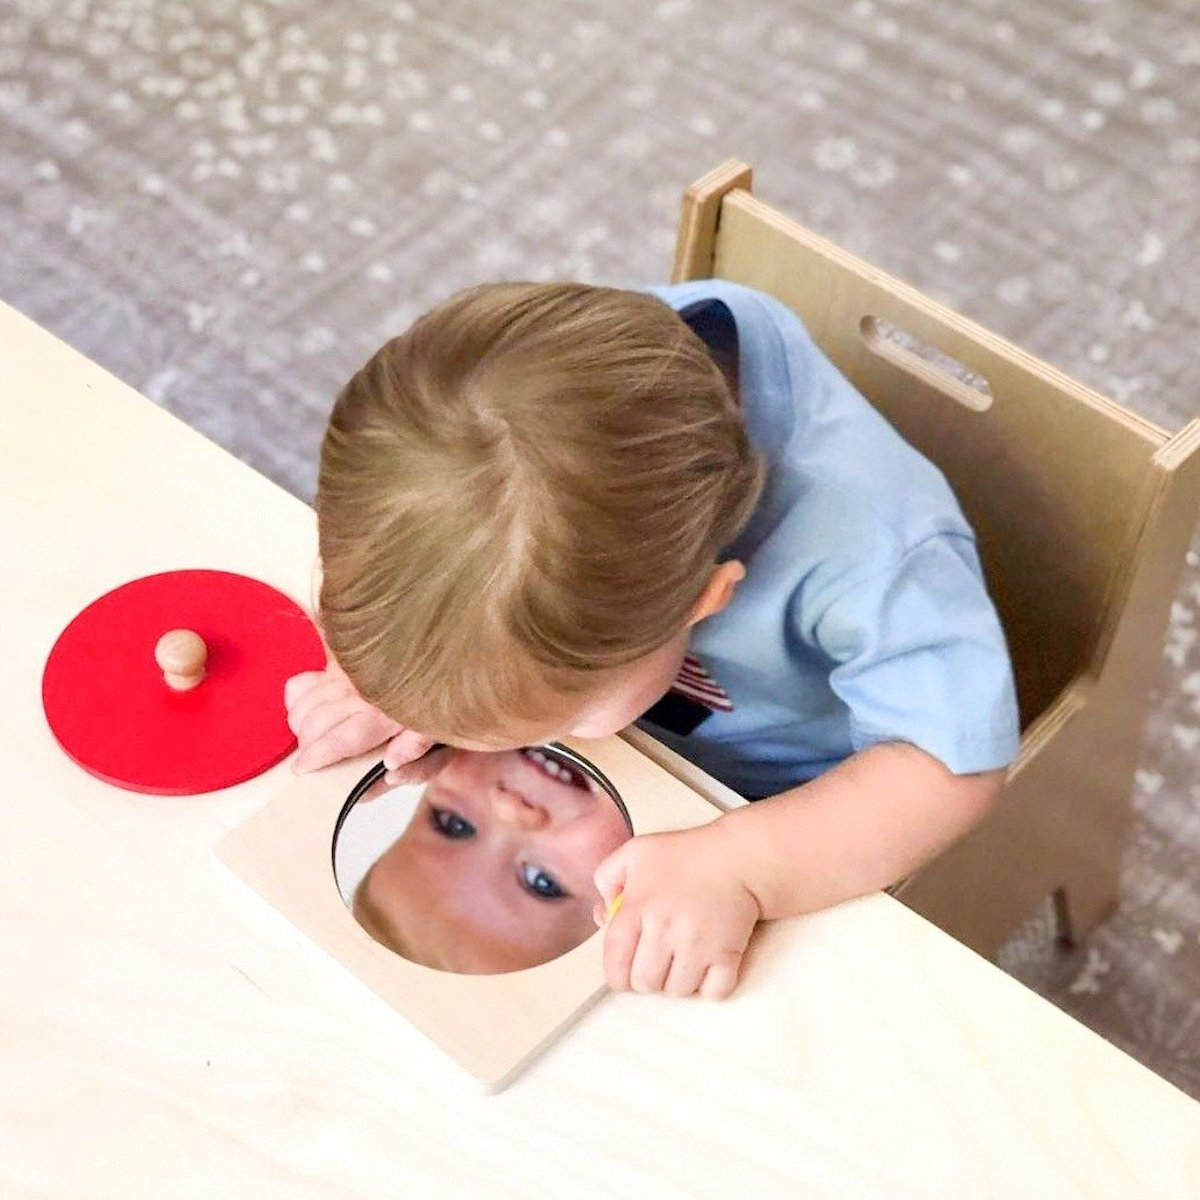 A toddler sitting at a wooden desk and looking down at a Familiar Faces Mirror puzzle